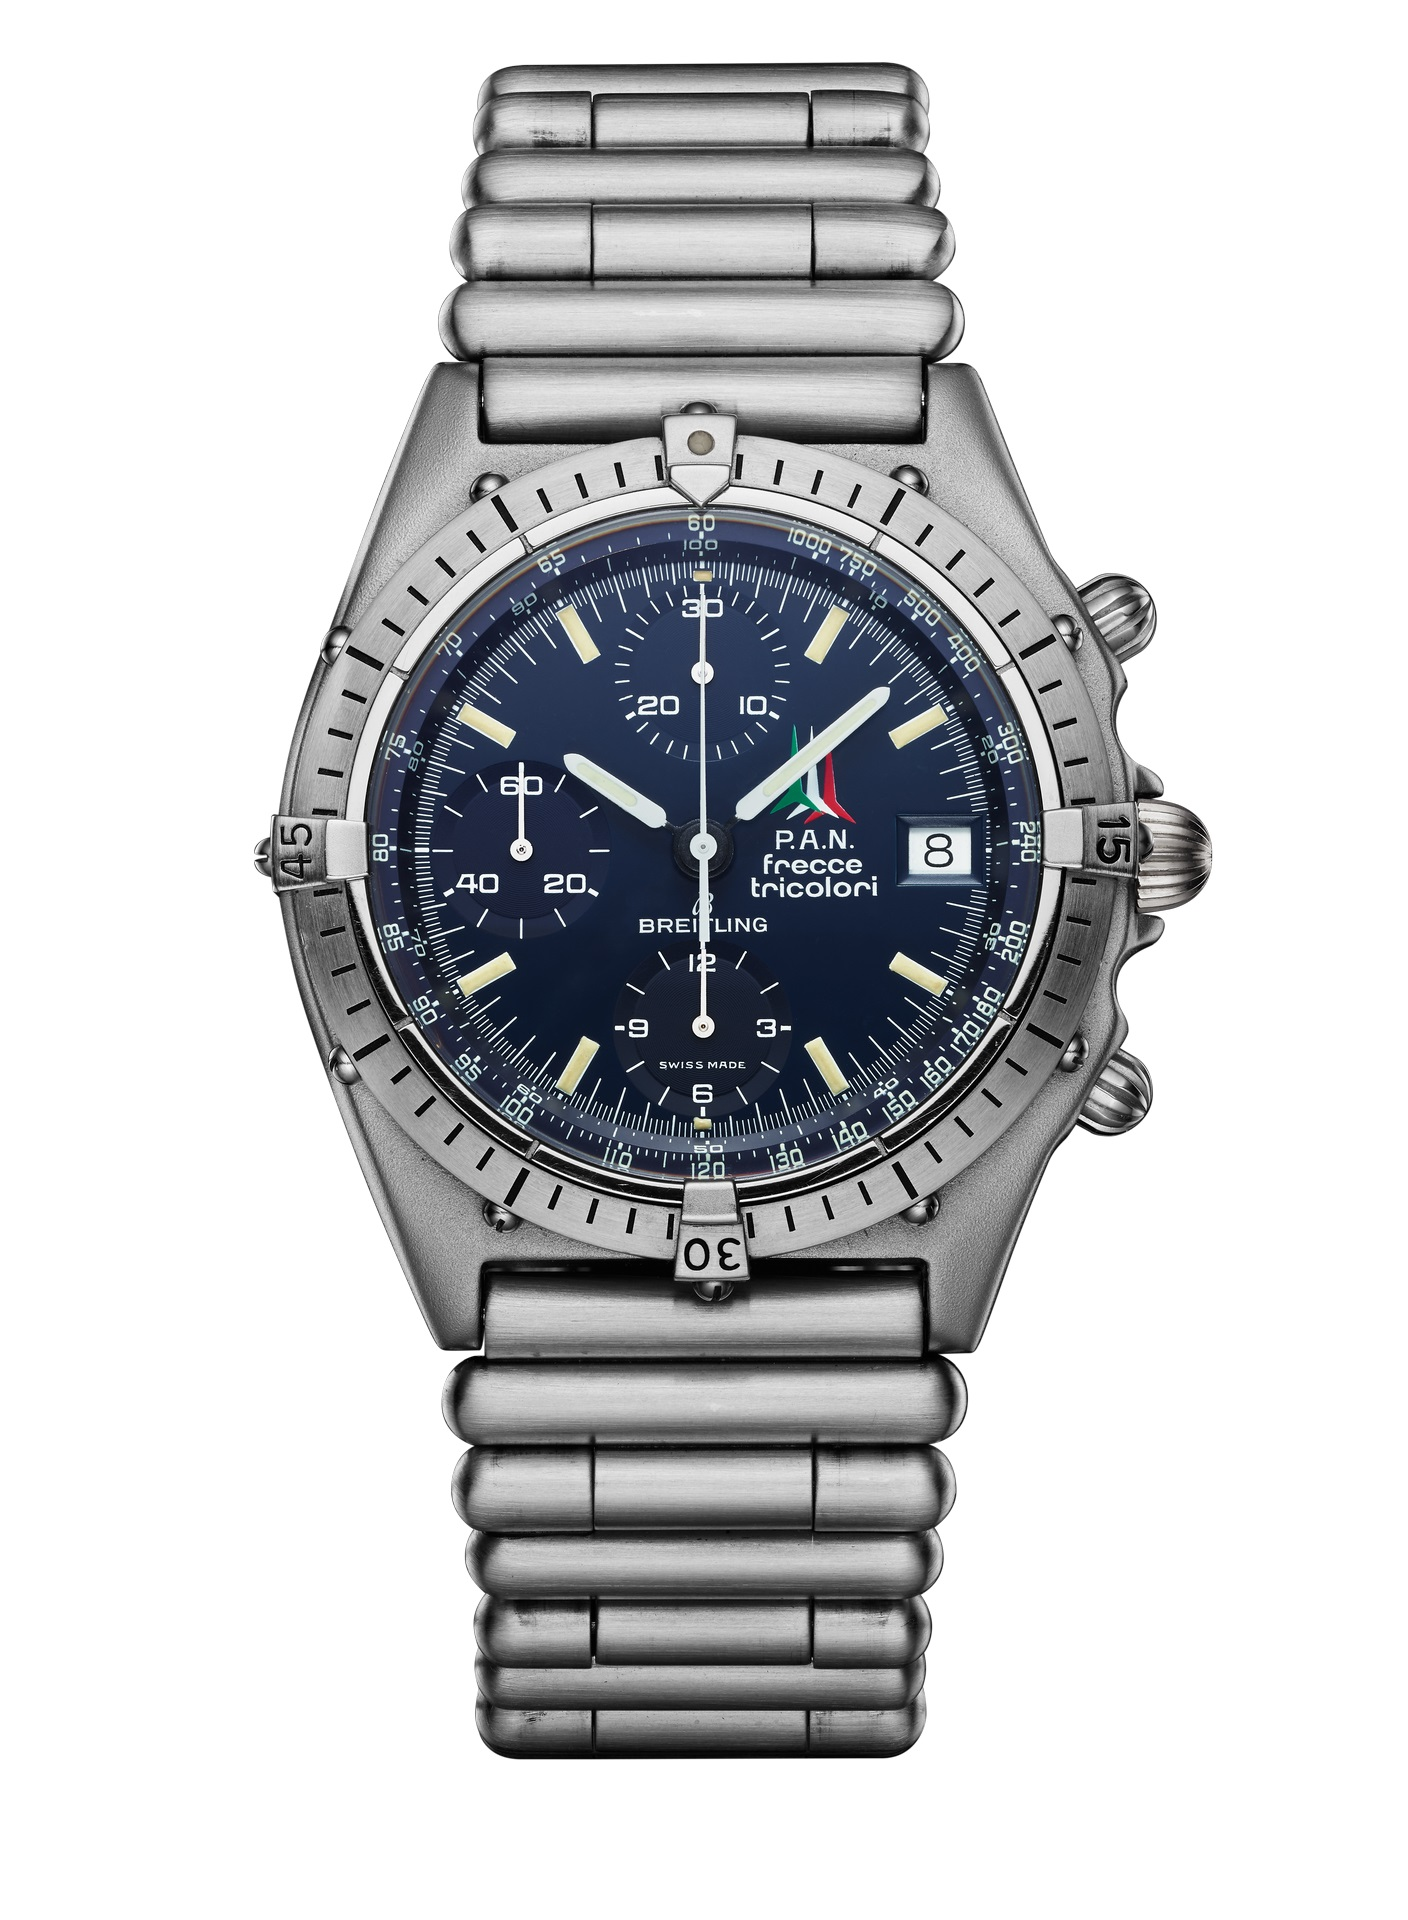 05_breitling-frecce-tricolori-watch-from-1983-that-inspired-the-chronomats-introduced-in-1984-to-celebrate-breitling-s-centenary